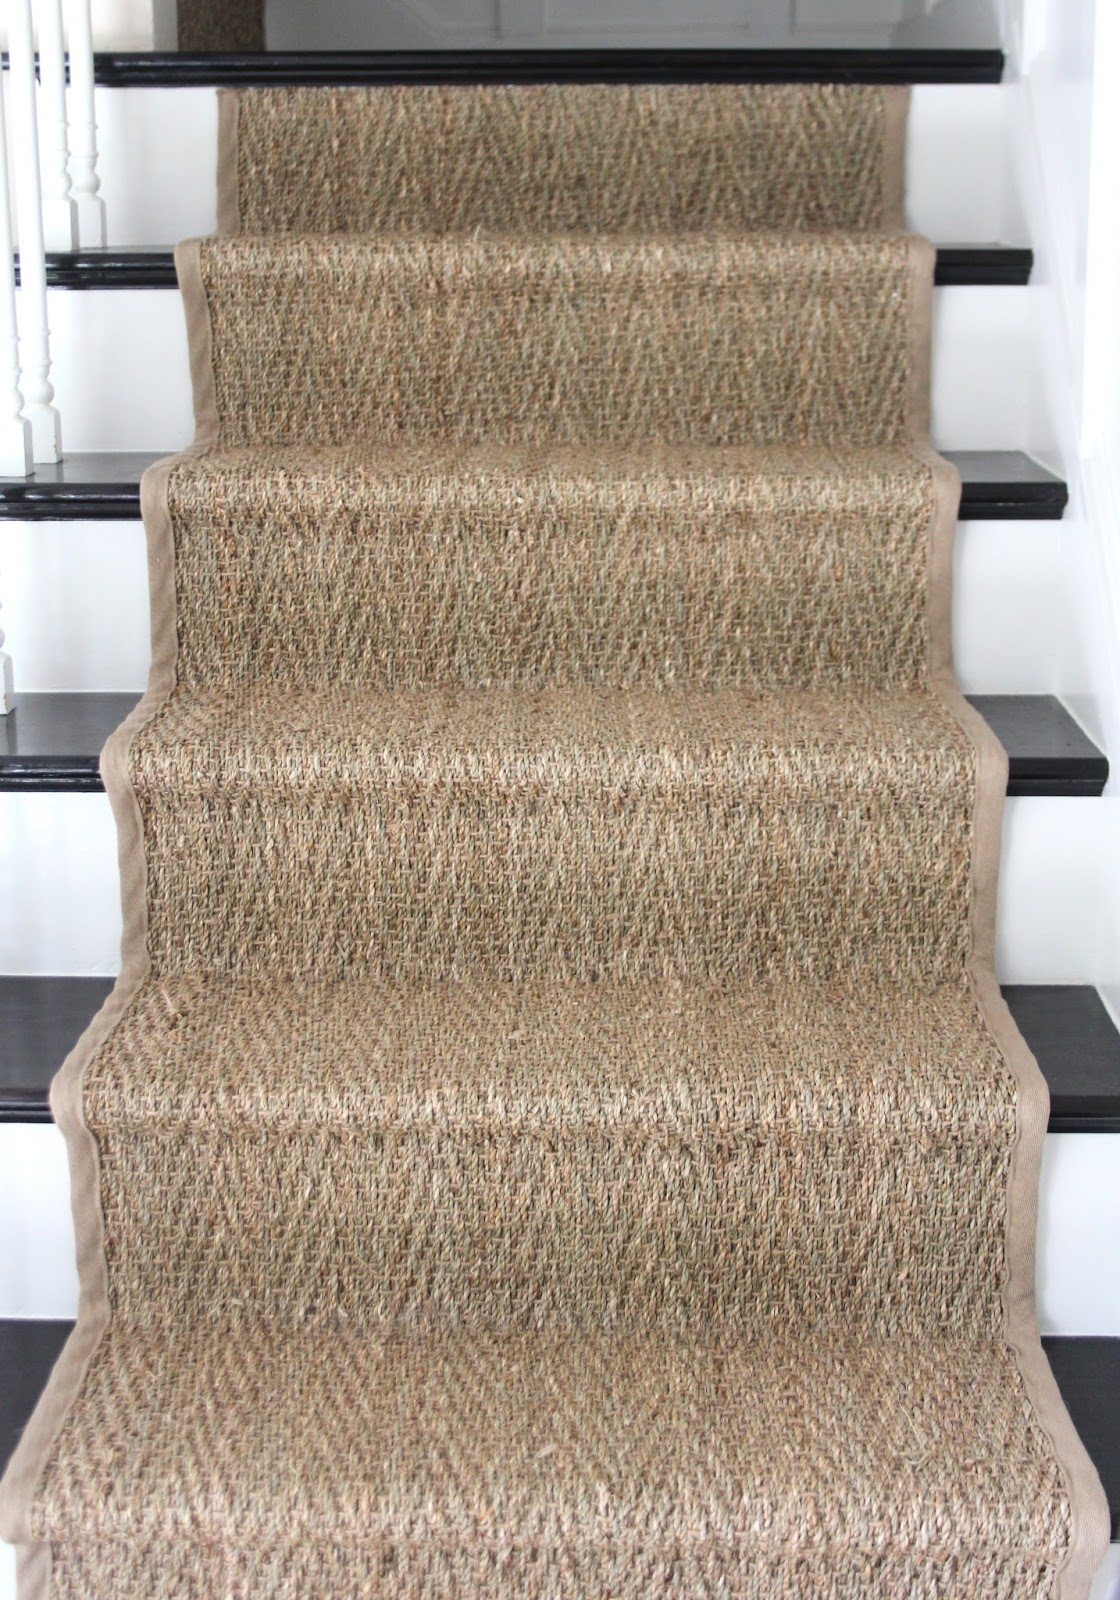 How To Seagrass Stair Runner Shine Your Light For Sisal Stair Tread Rugs (#11 of 20)